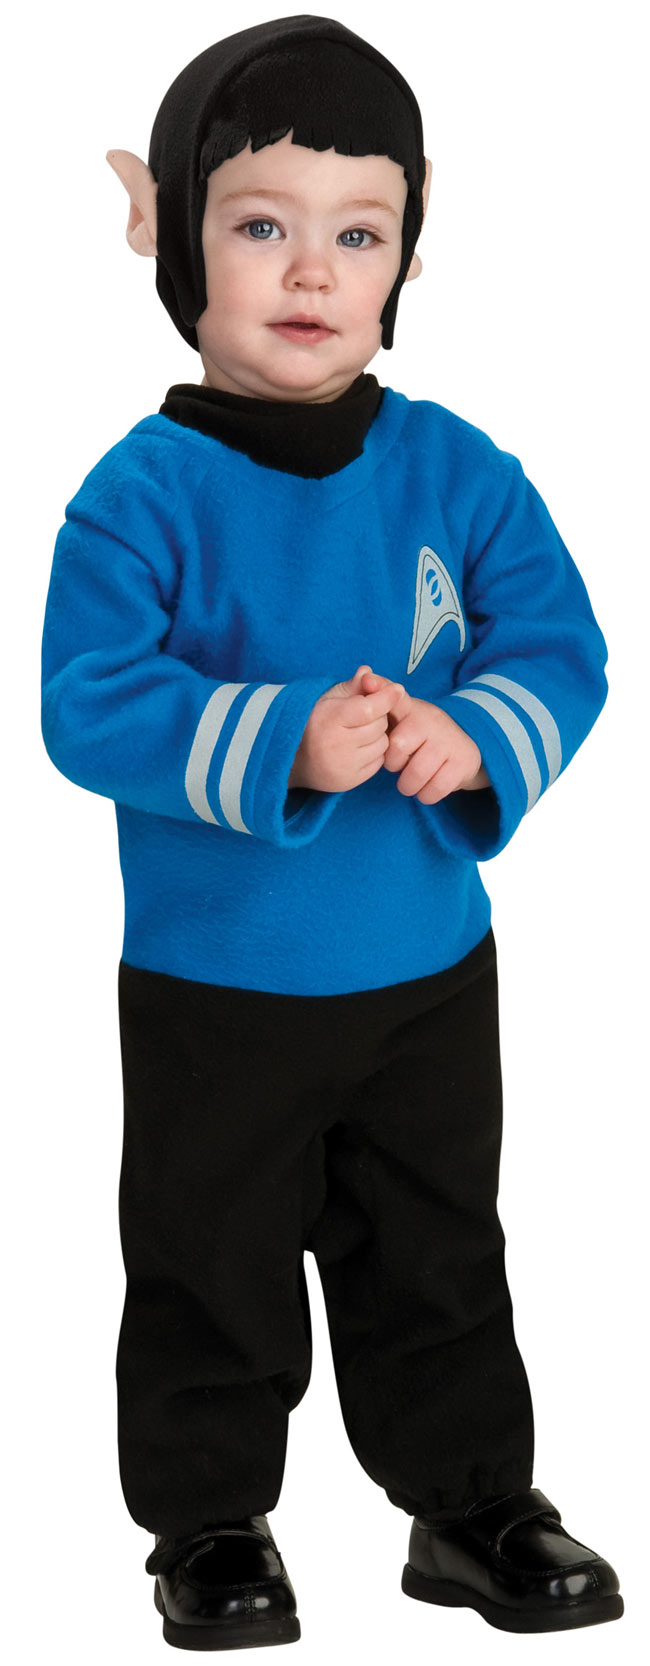 [poisson d'avril] Costumes et uniformes, LE nouveau topic Star-Trek-Baby-Costume